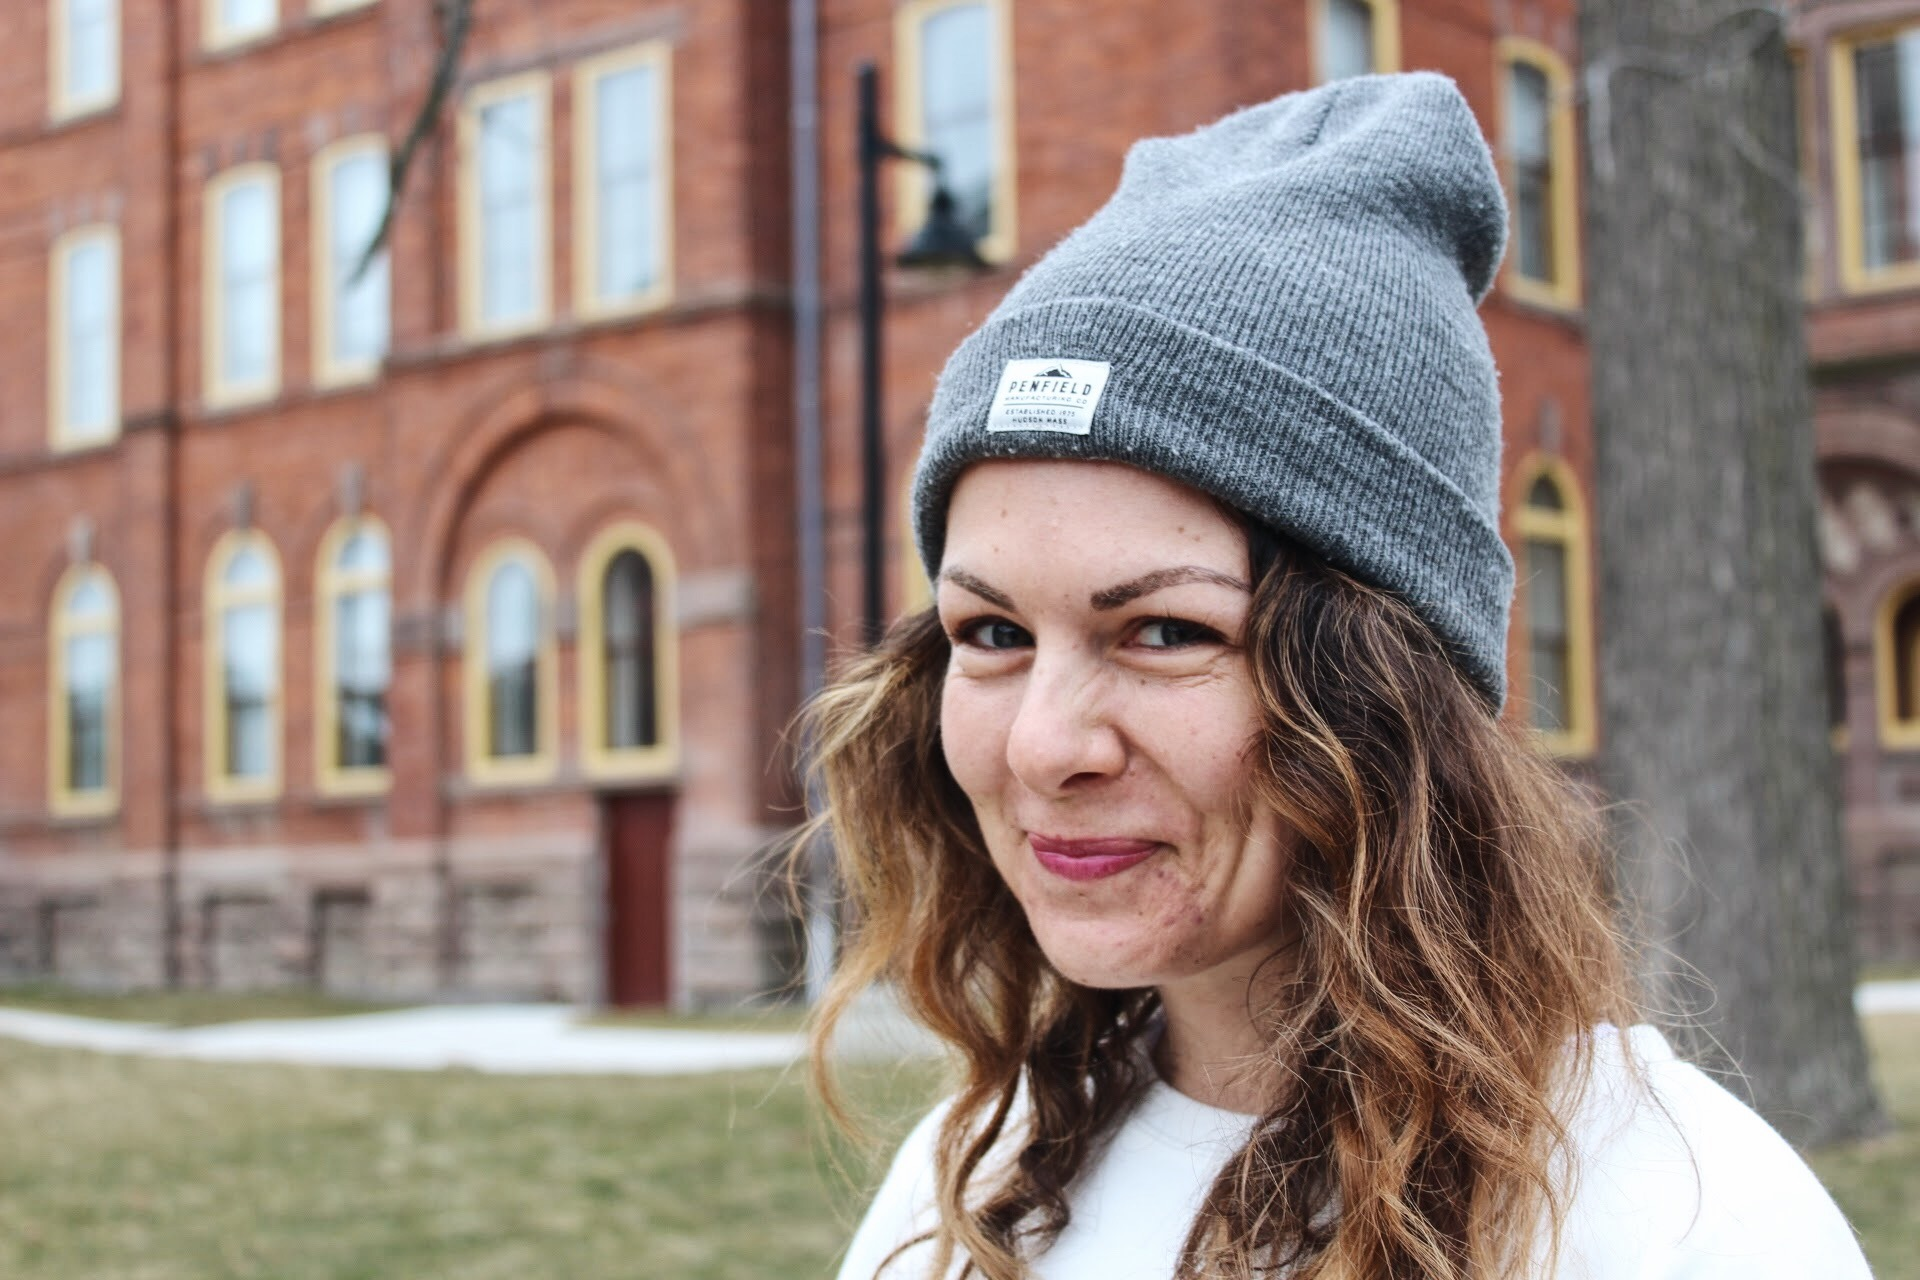 campus street style, fashion humber, fashion students, Penfield beanie hat, Meaghan Dorion